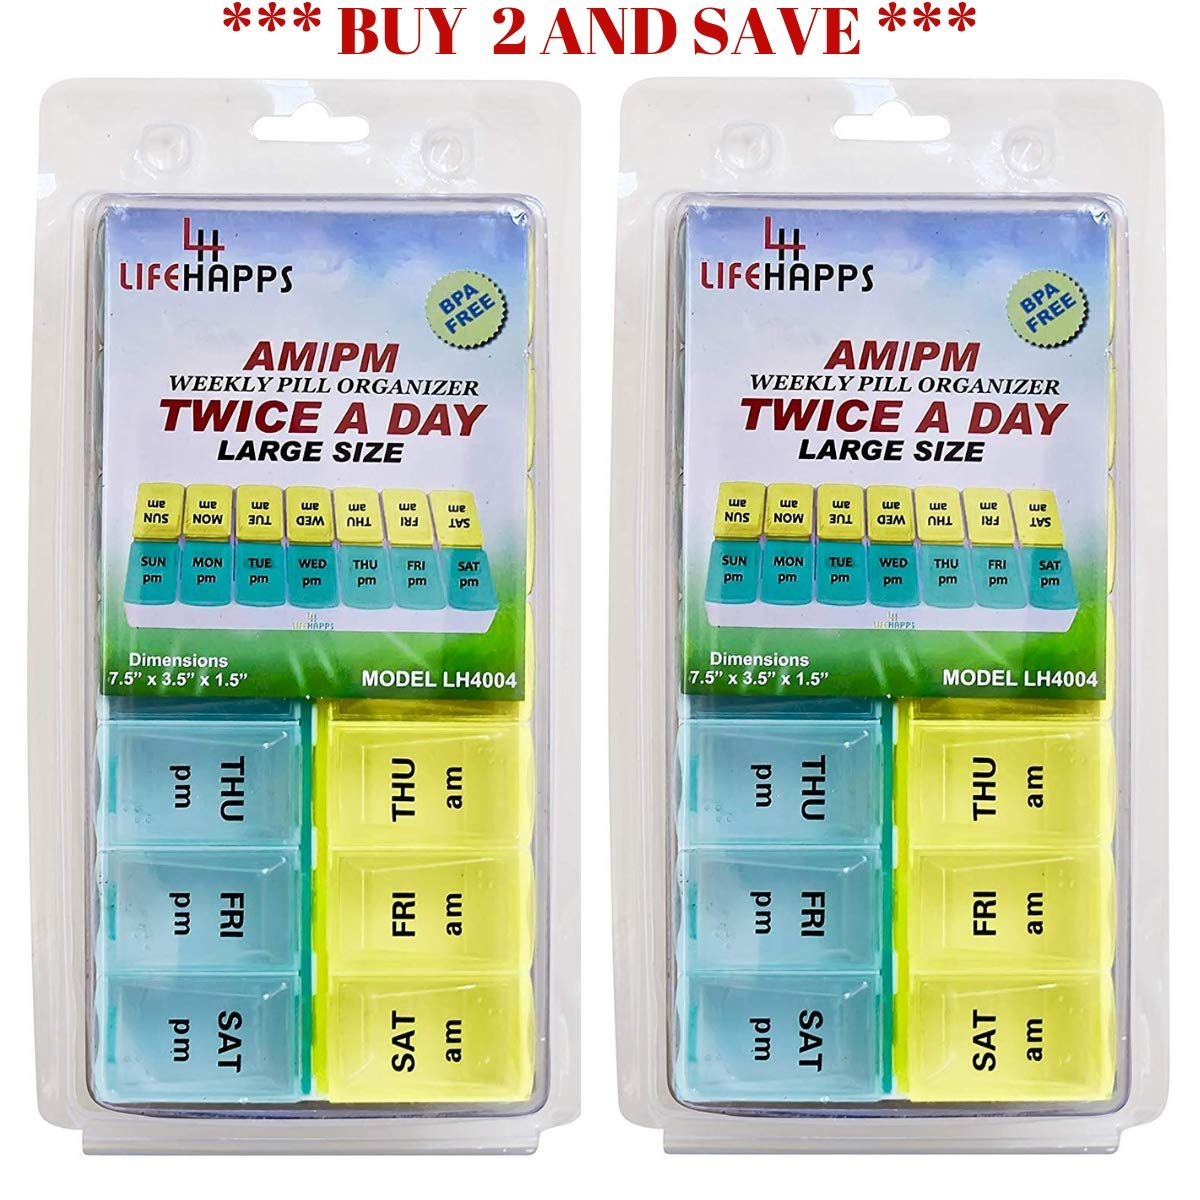 Large Weekly Pill Box- 7 Day Am/Pm Daily Pill Organizer BPA Free by Lifehapps - (2 pack) Twice A Day 14 Compartment Storage Case, The Perfect Container For Vitamins, Supplements and Medications